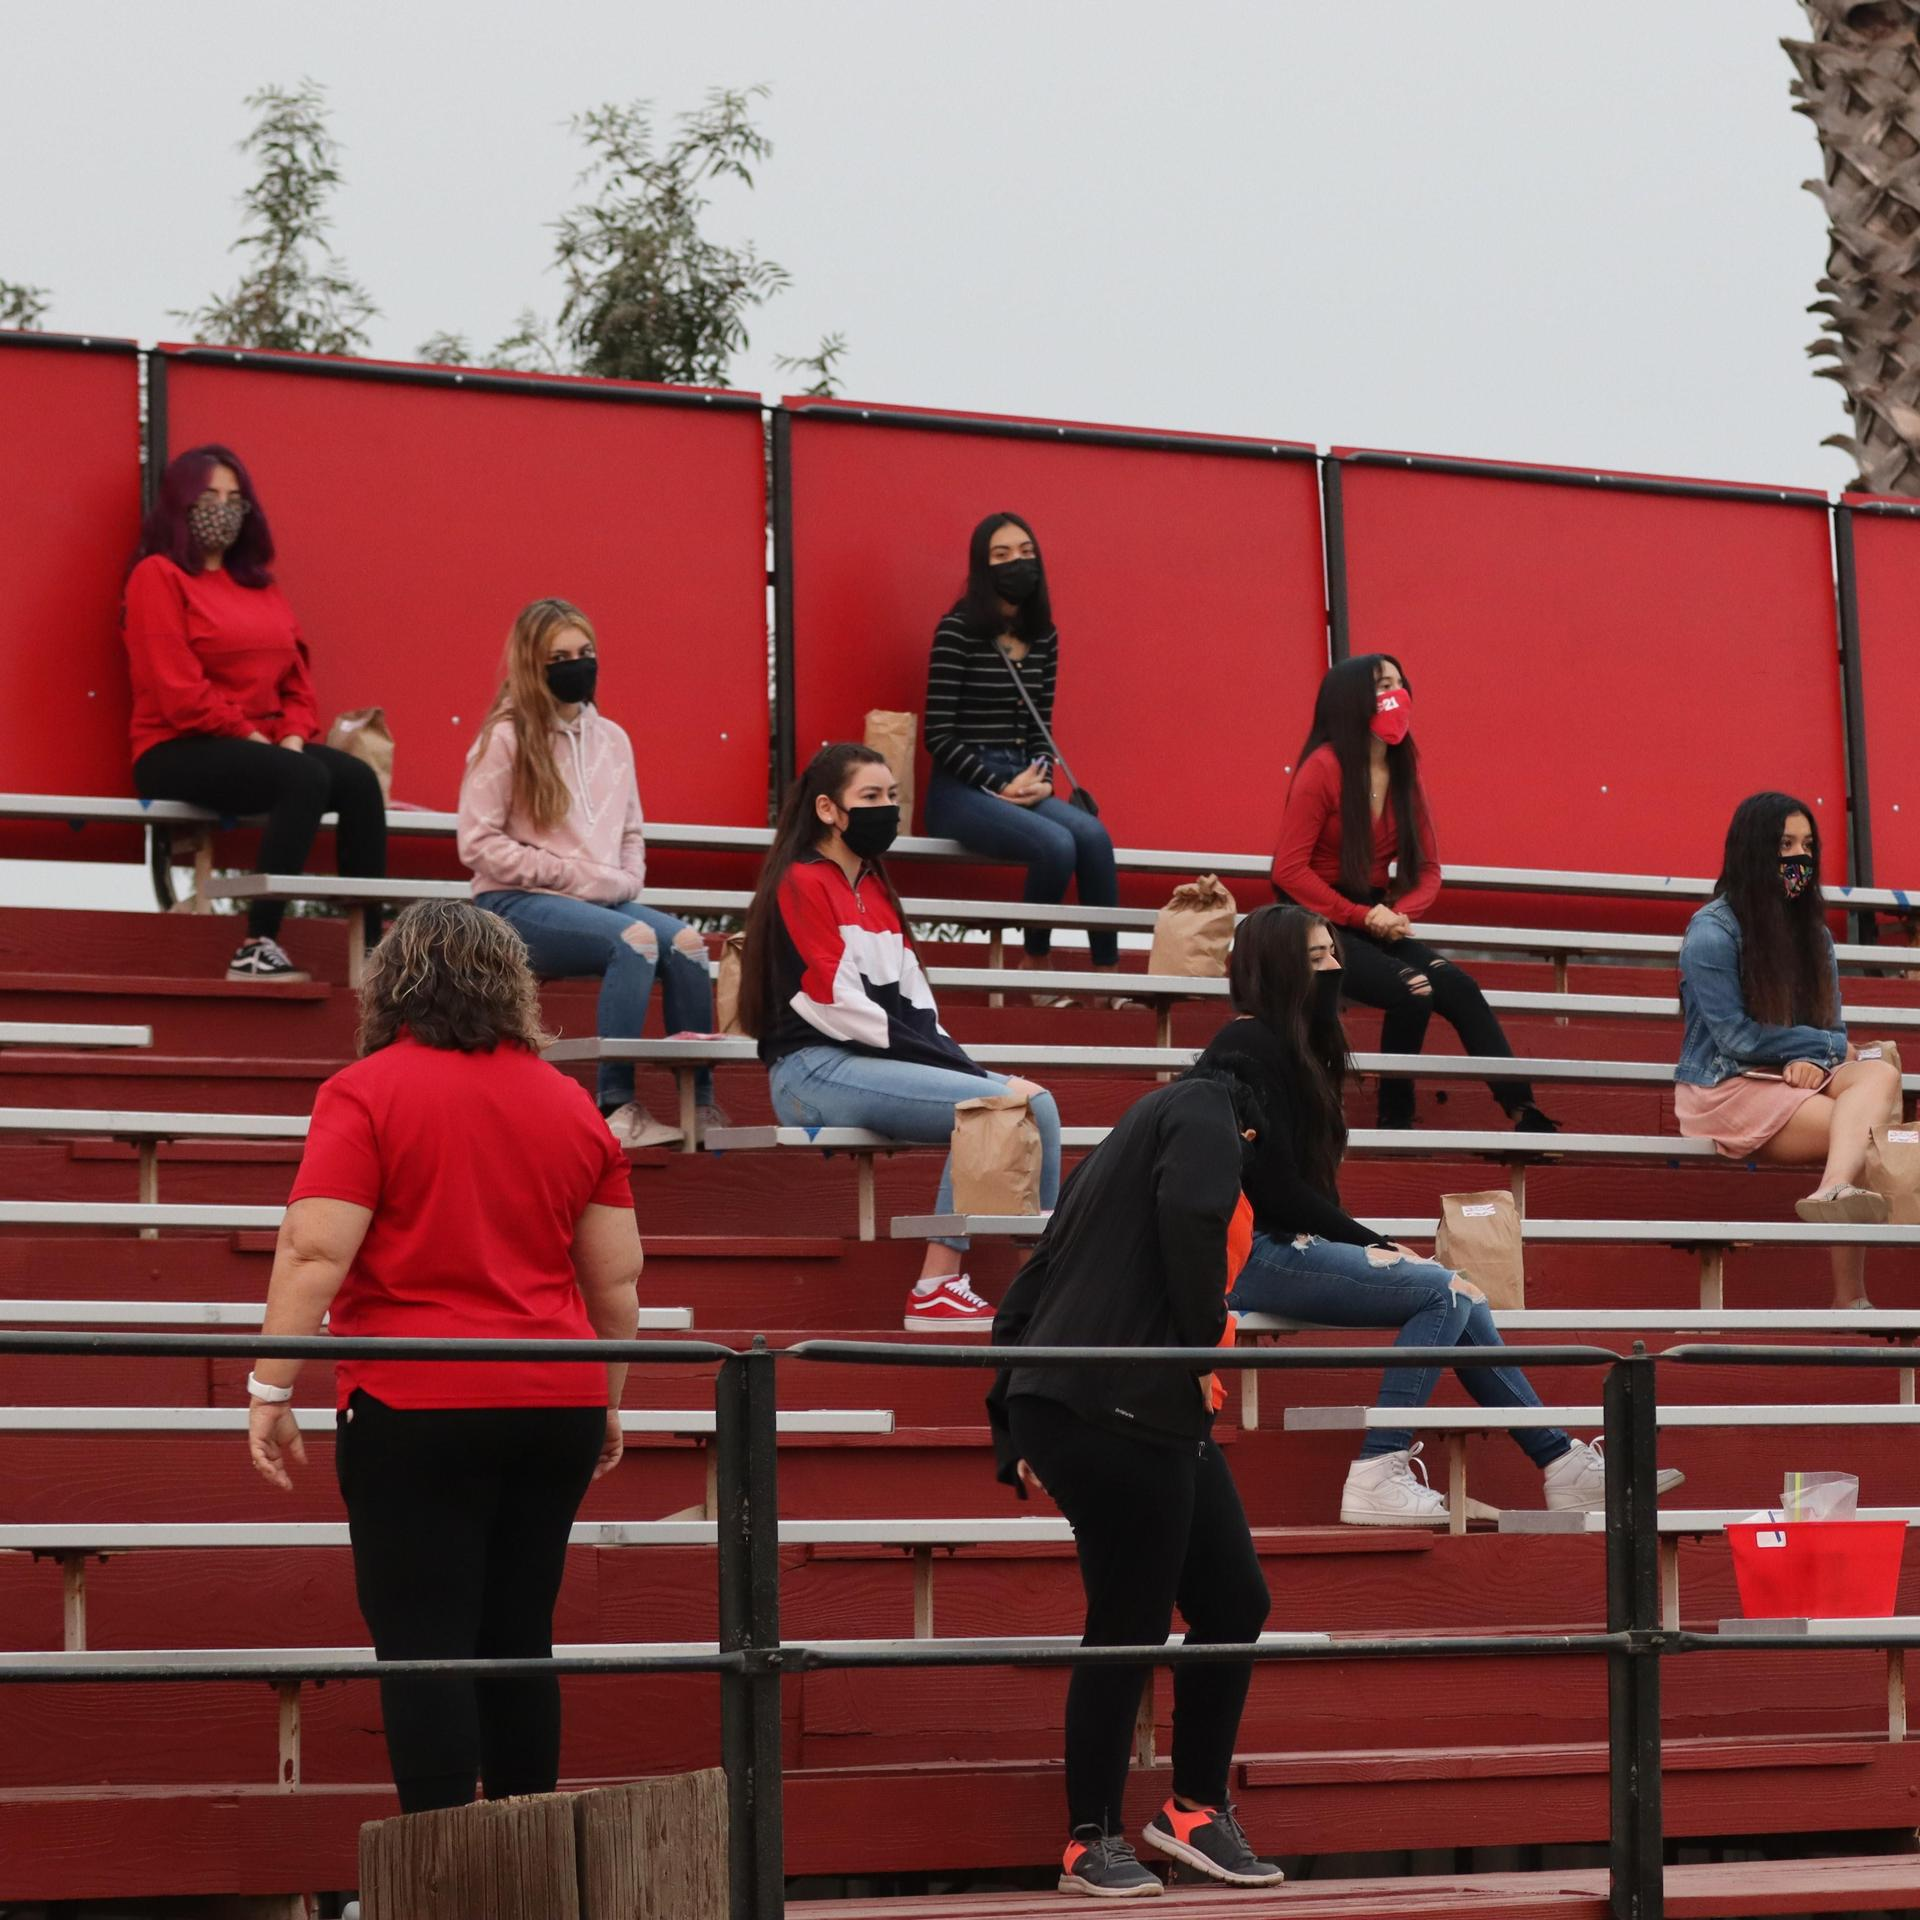 students and staff sitting in the bleachers